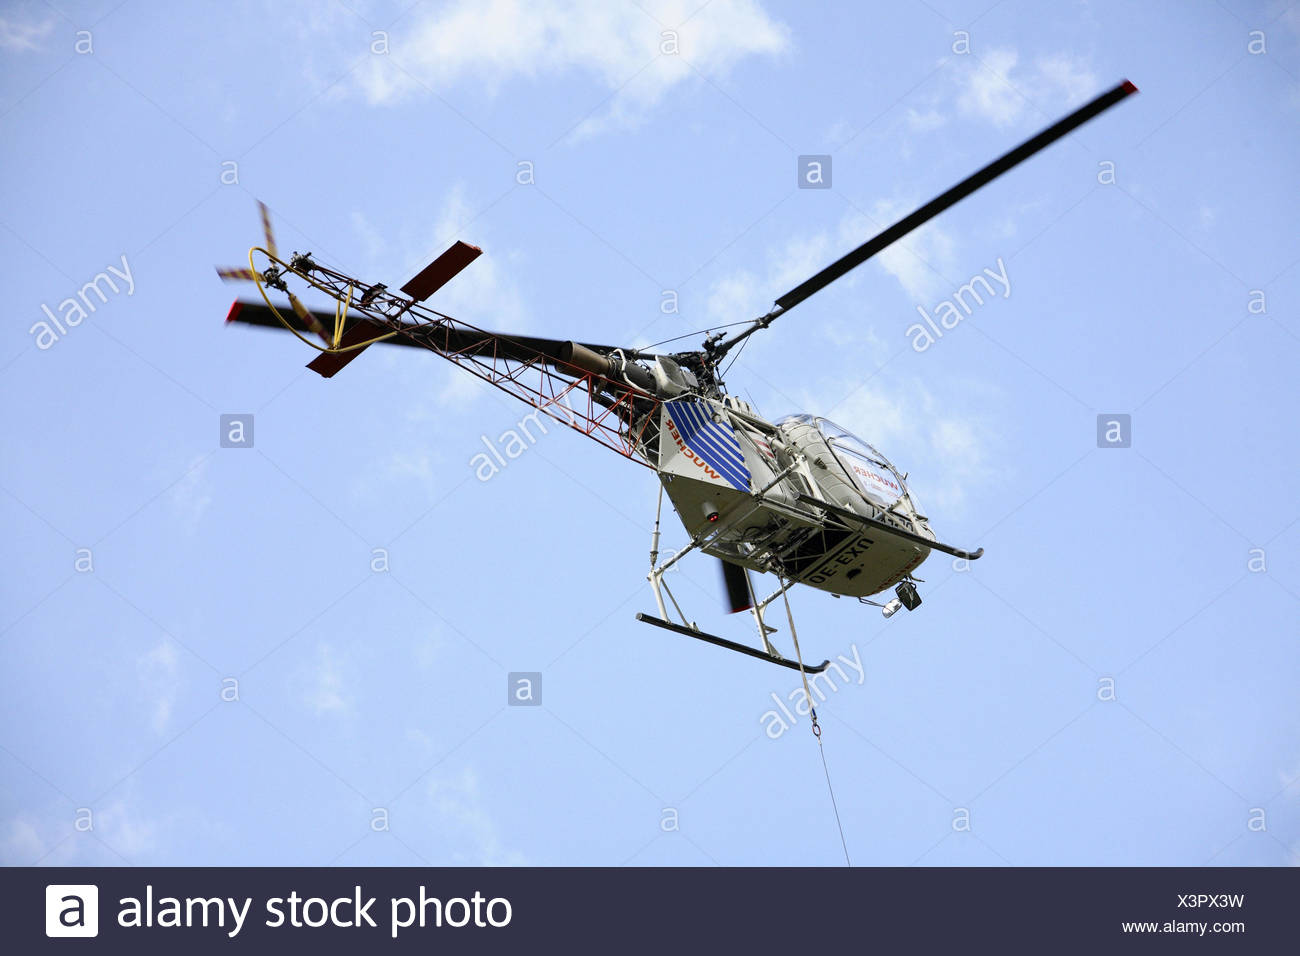 Cloudy skies, costs helicopters, from below, helicopter, helicopter, fly, helicopter flight, costs, transport, transport flight, helicopter entry, charge, loading, Zubringung, airway, perspective, - Stock Image